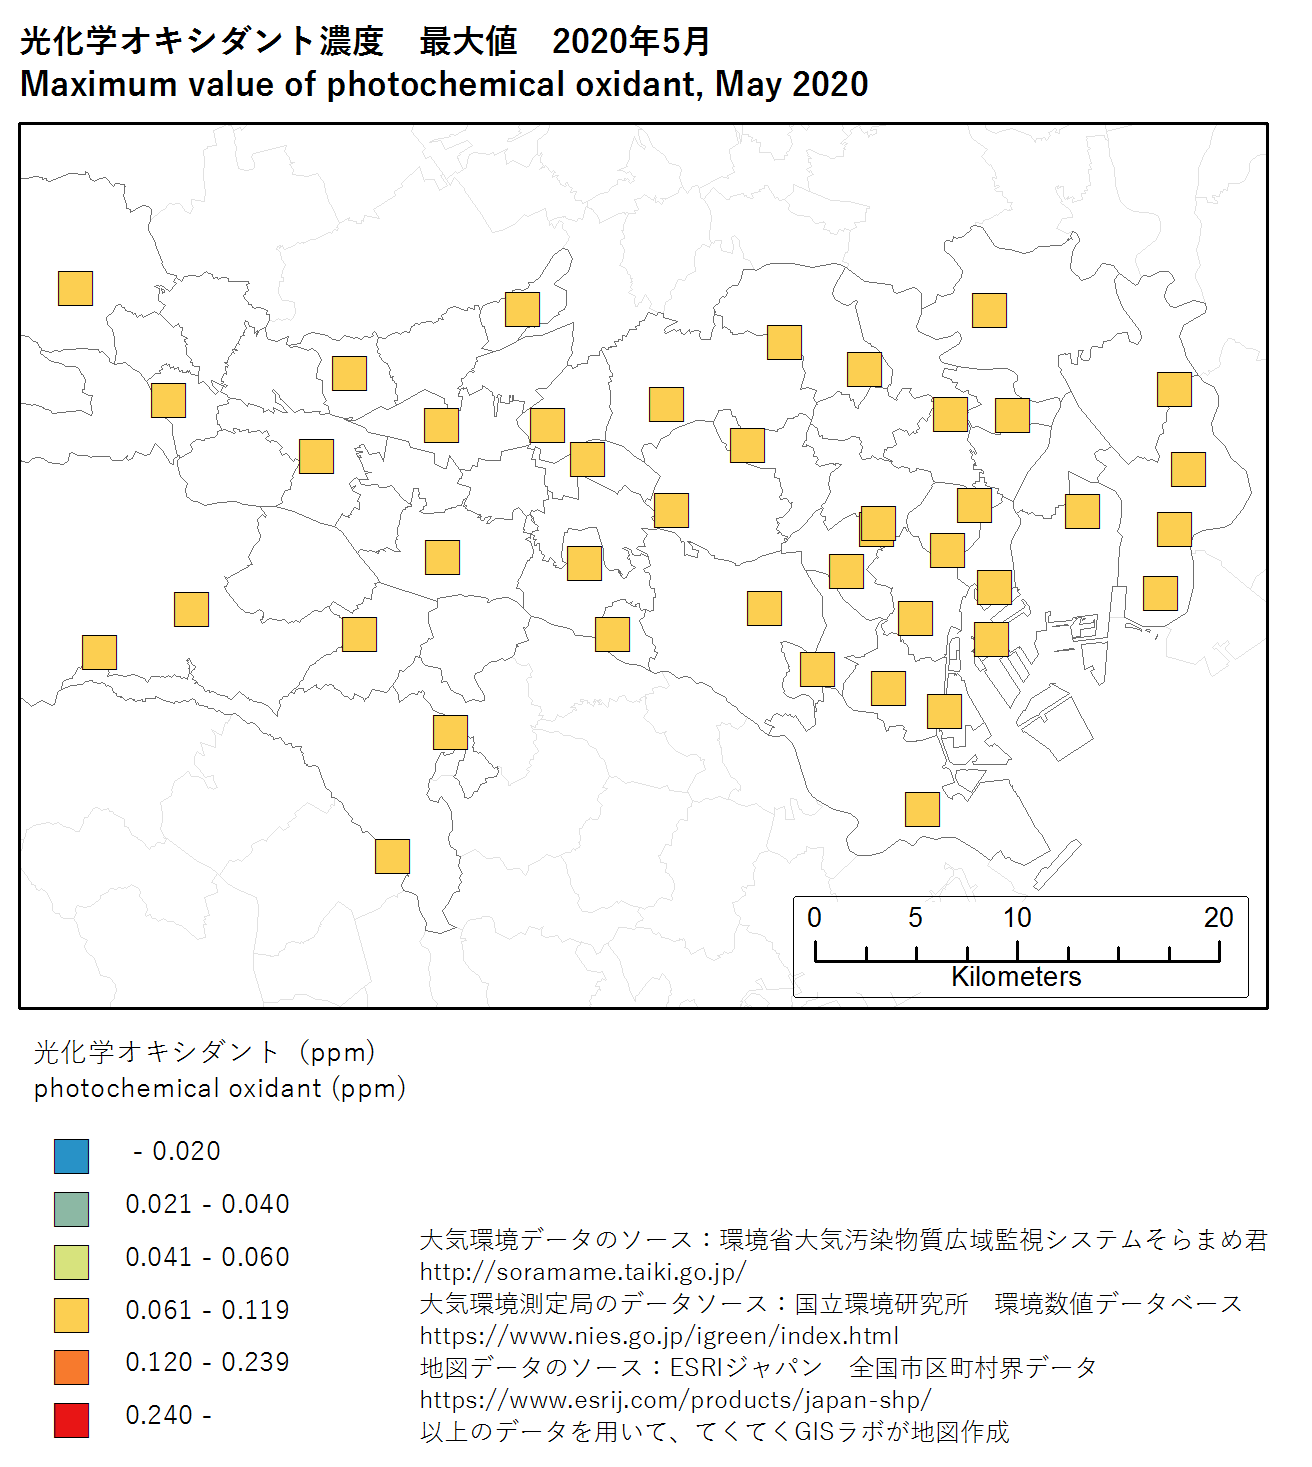 photochromic oxidant map (max) of Tokyo, May 2020